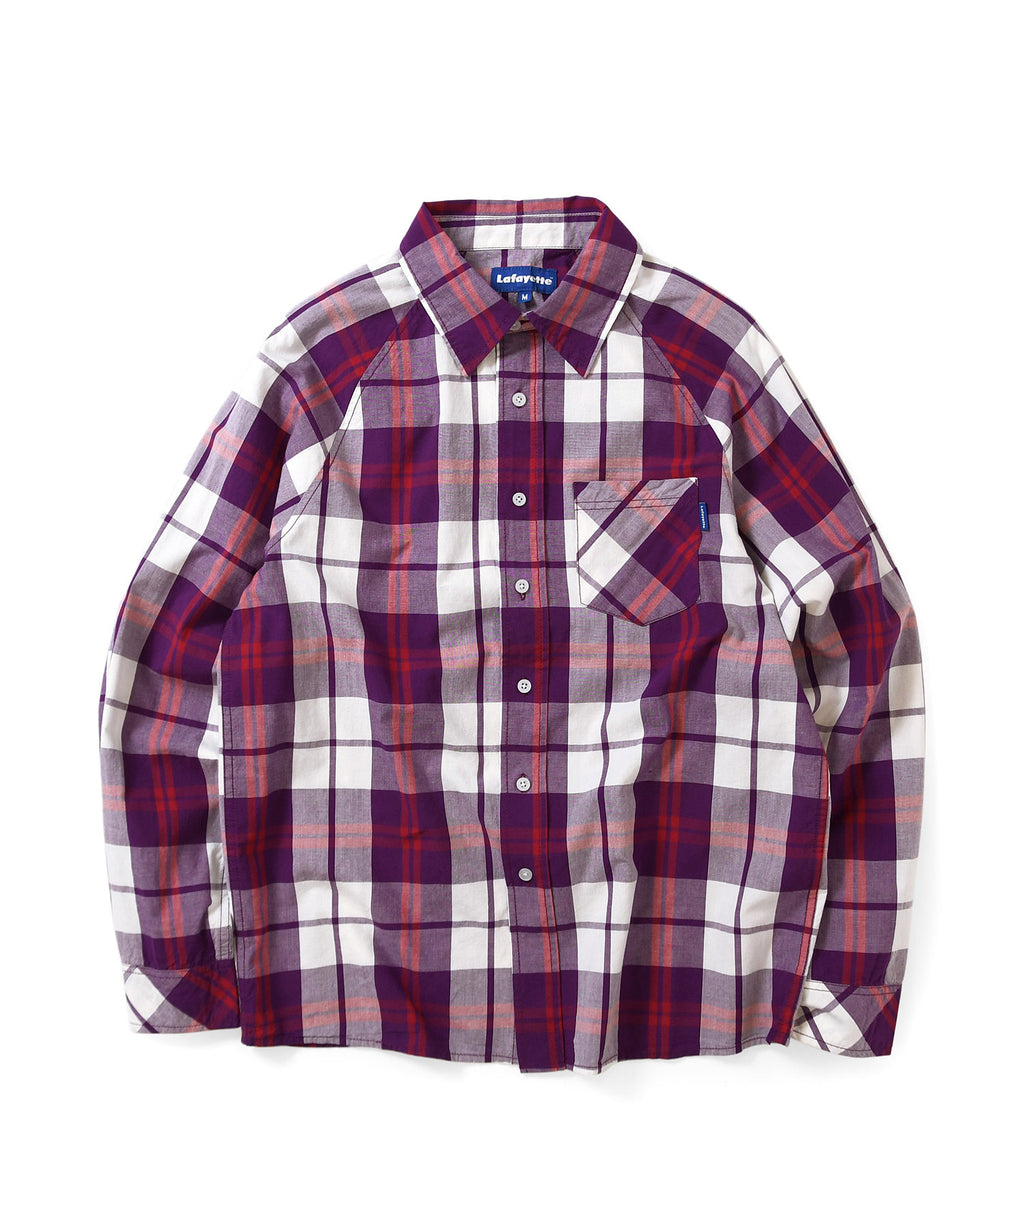 Lafayette RAGLAN PLAID L/S SHIRT LS200203 PURPLE